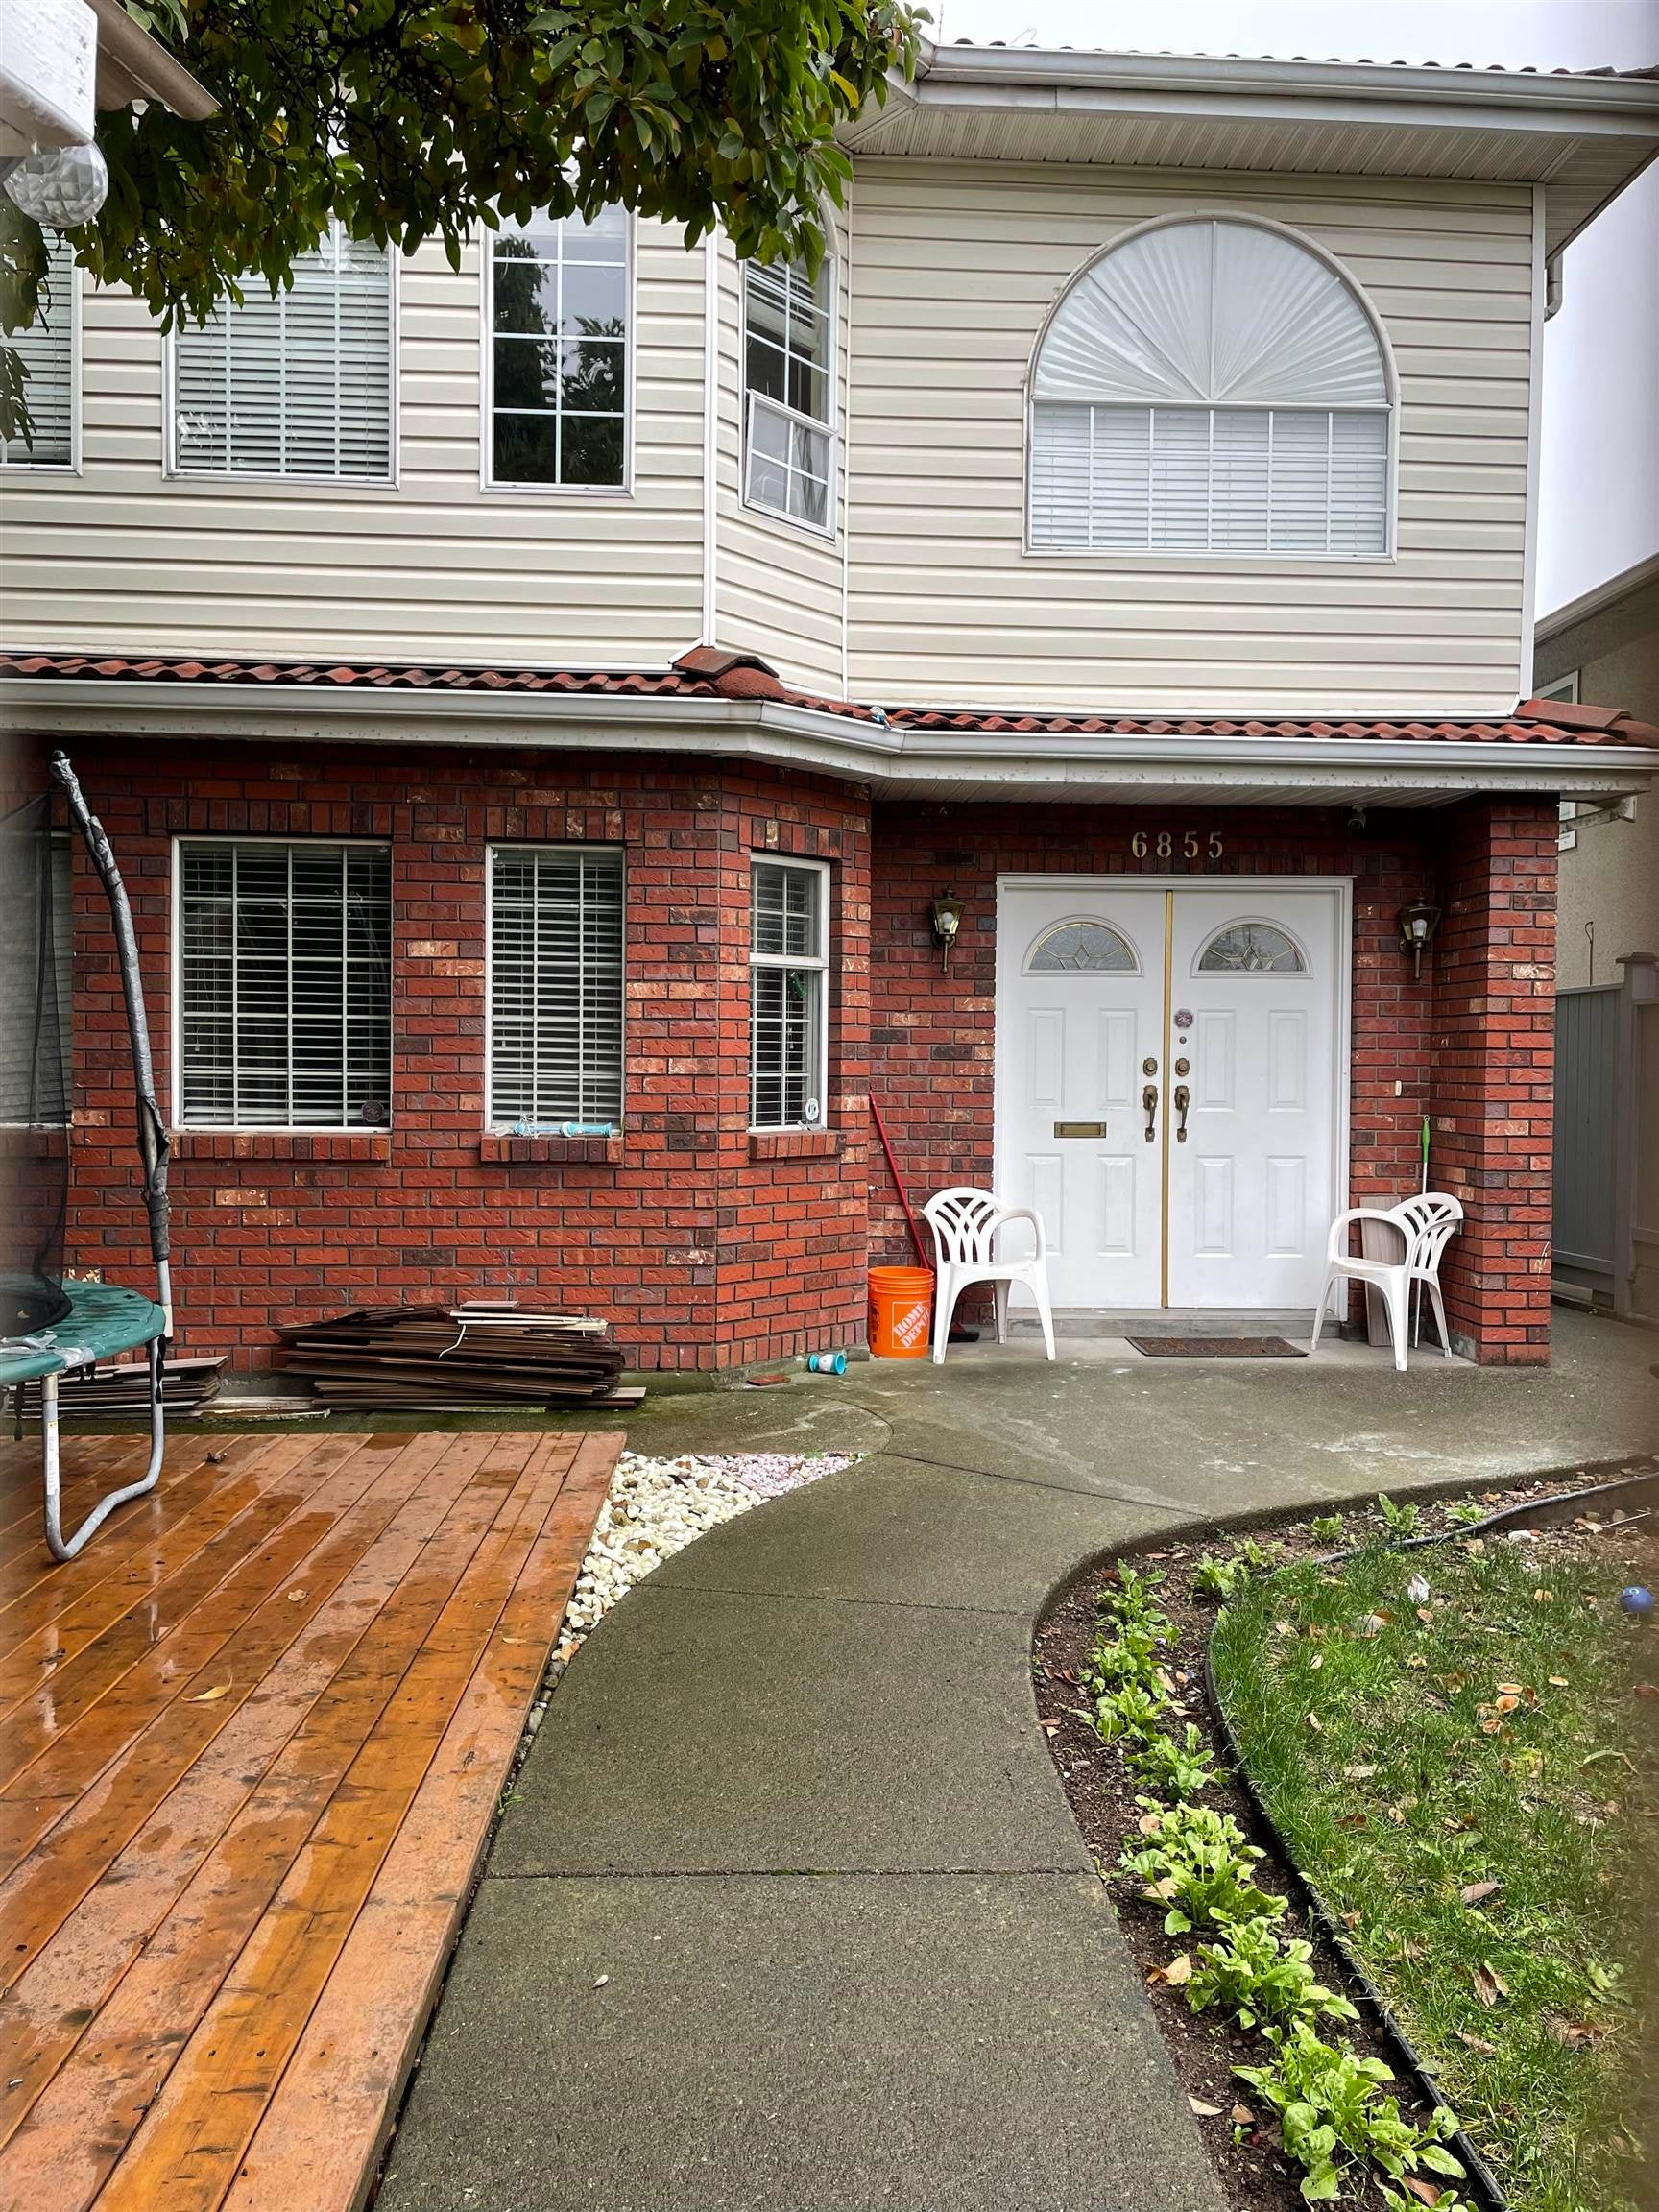 6855 KNIGHT STREET - South Vancouver House/Single Family for sale, 8 Bedrooms (R2626309) - #1